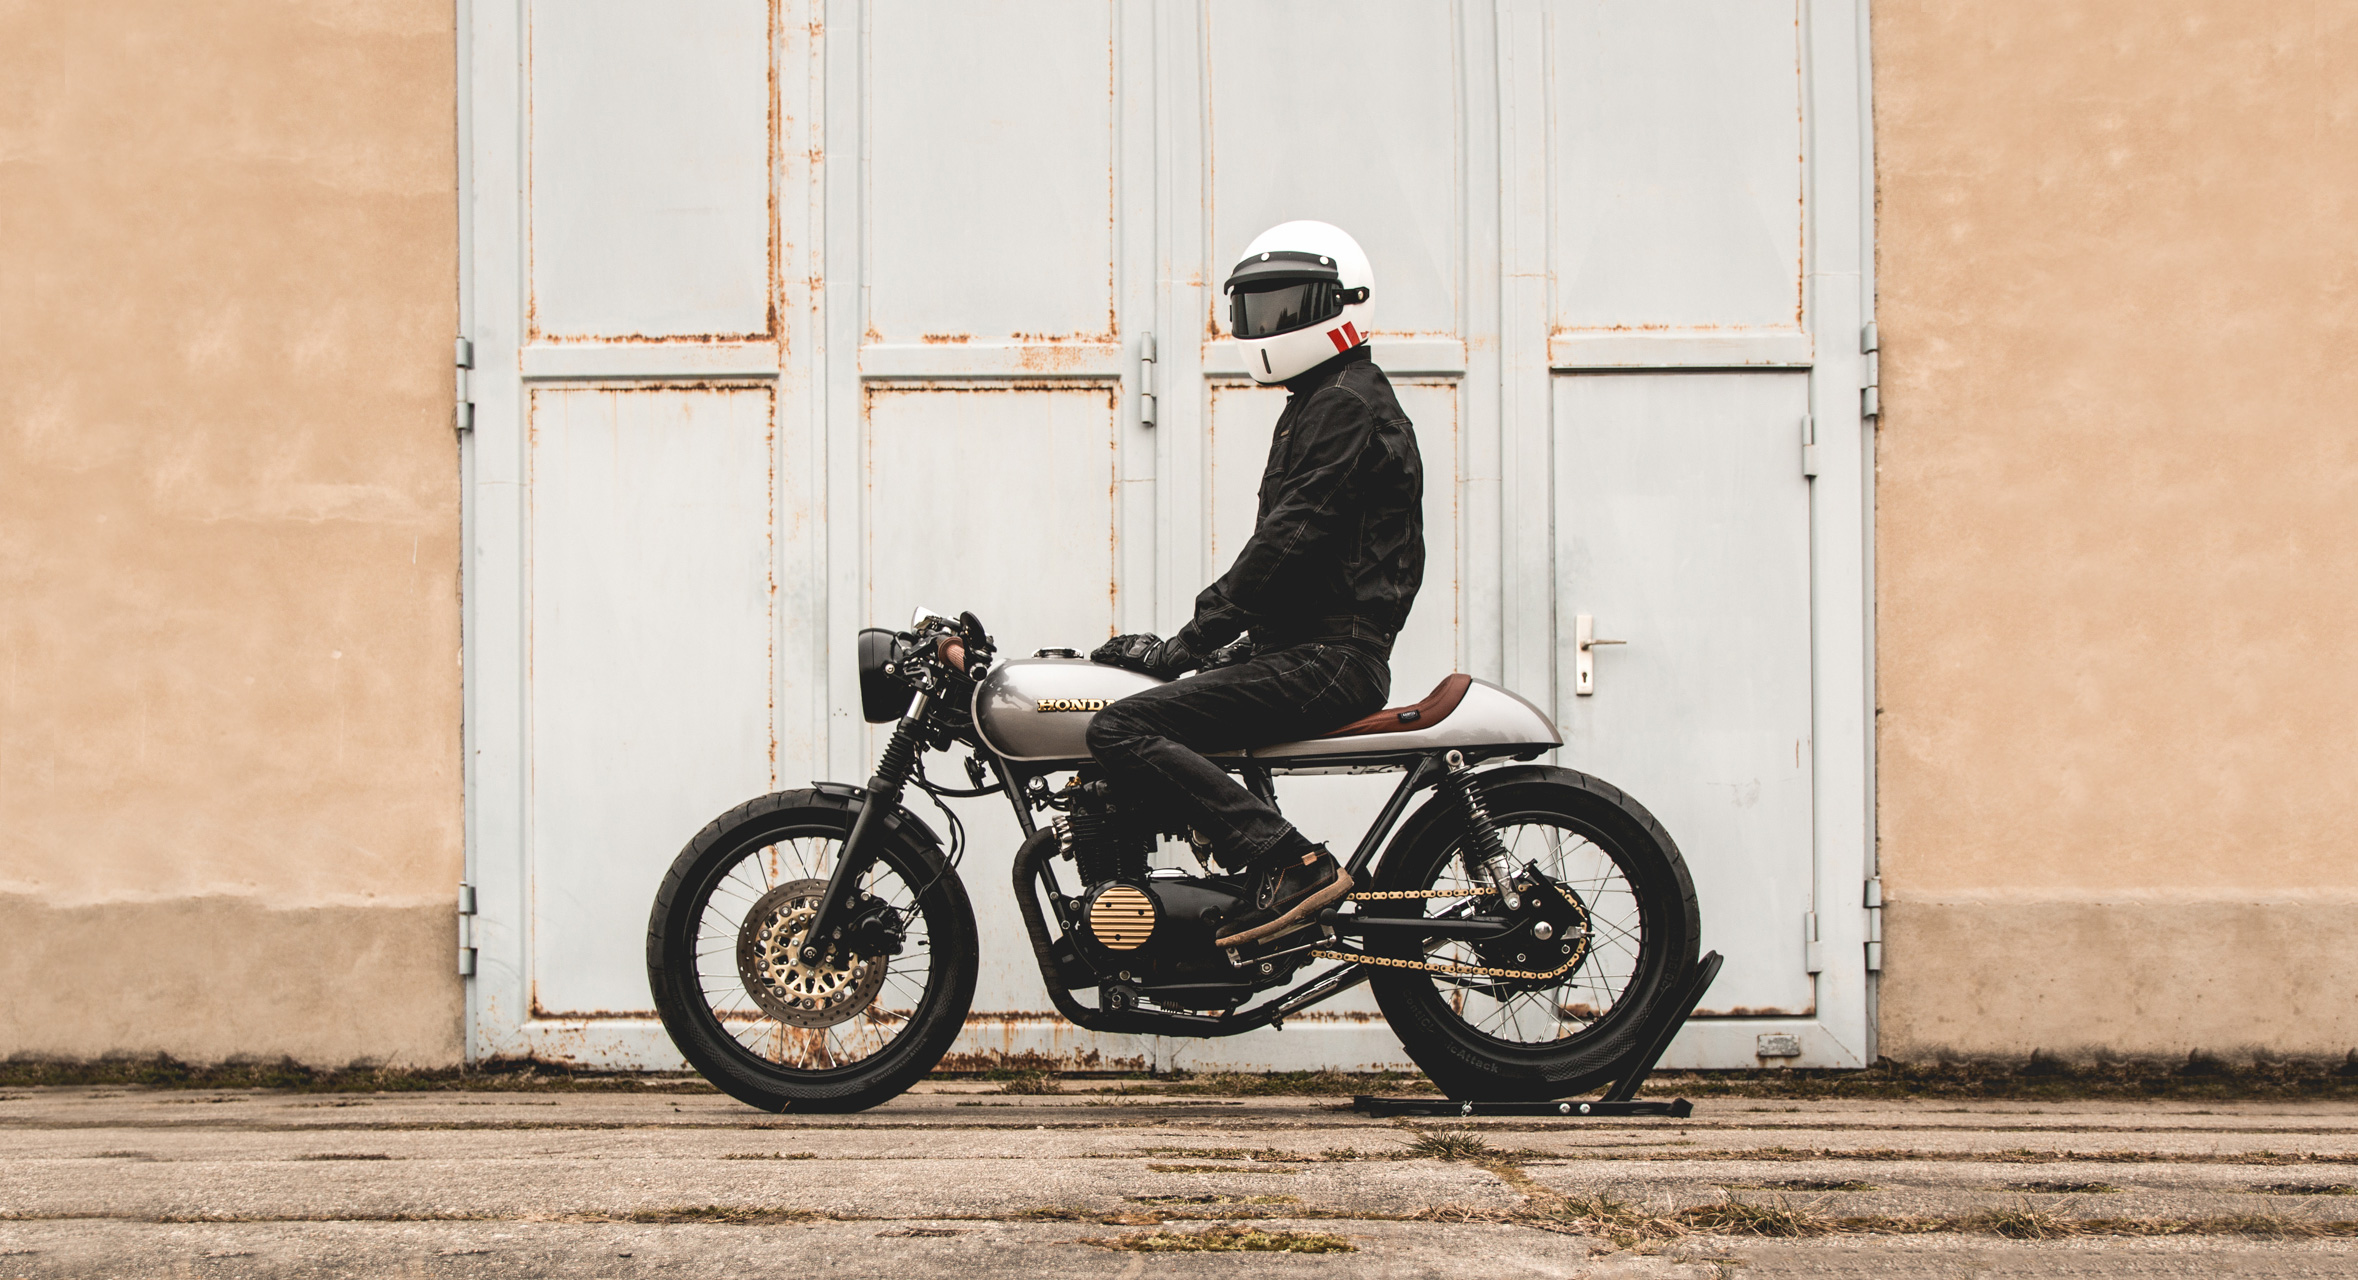 Ready To Ride: Honda CB 500 Four Cafe Racer By Kaspeed